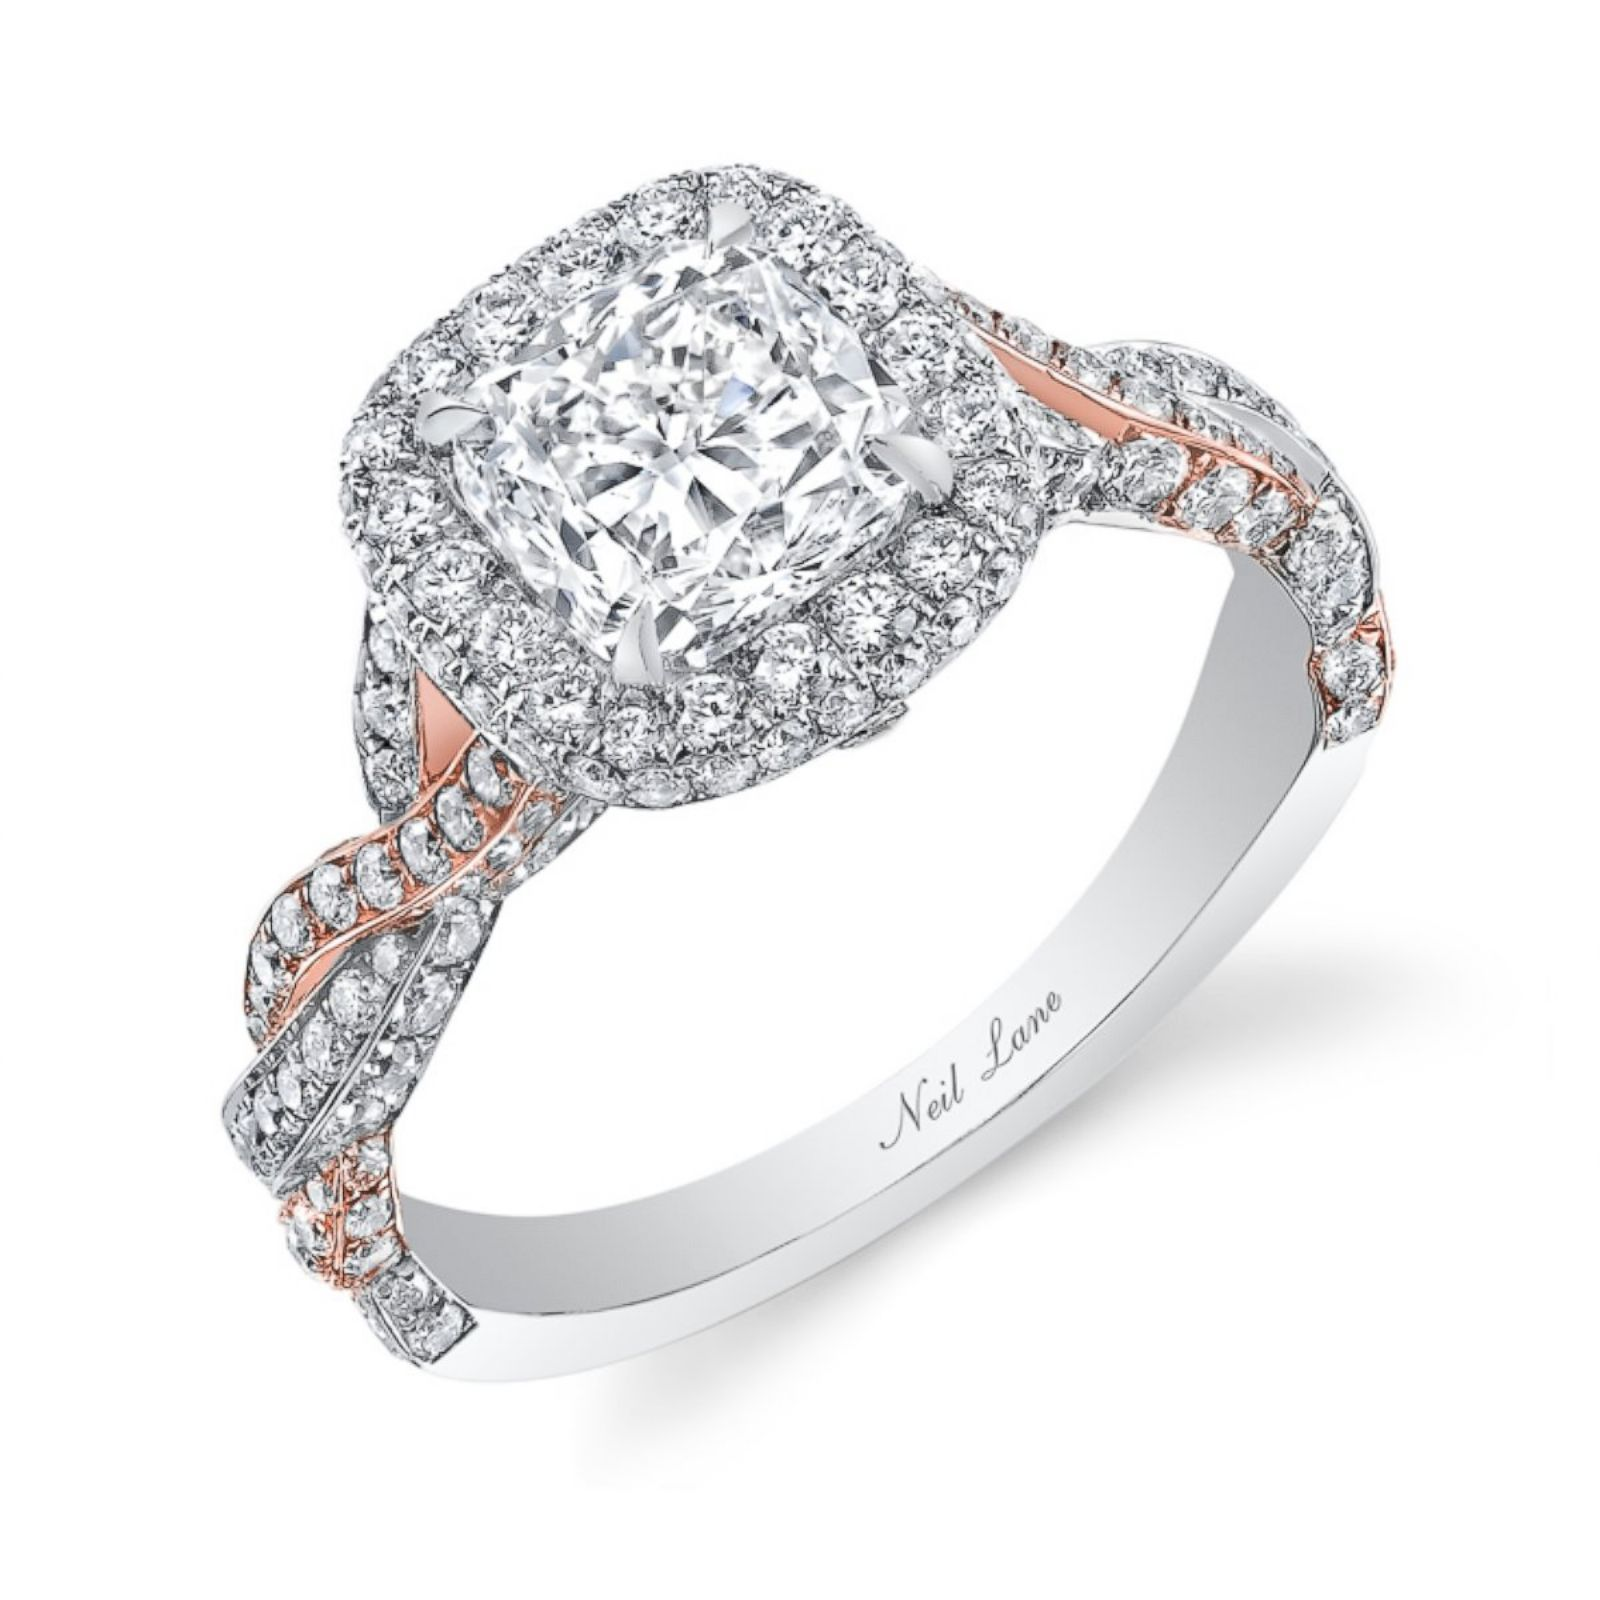 A History Of U0027Bacheloru0027 And U0027Bacheloretteu0027 Engagement Rings Photos   ABC  News